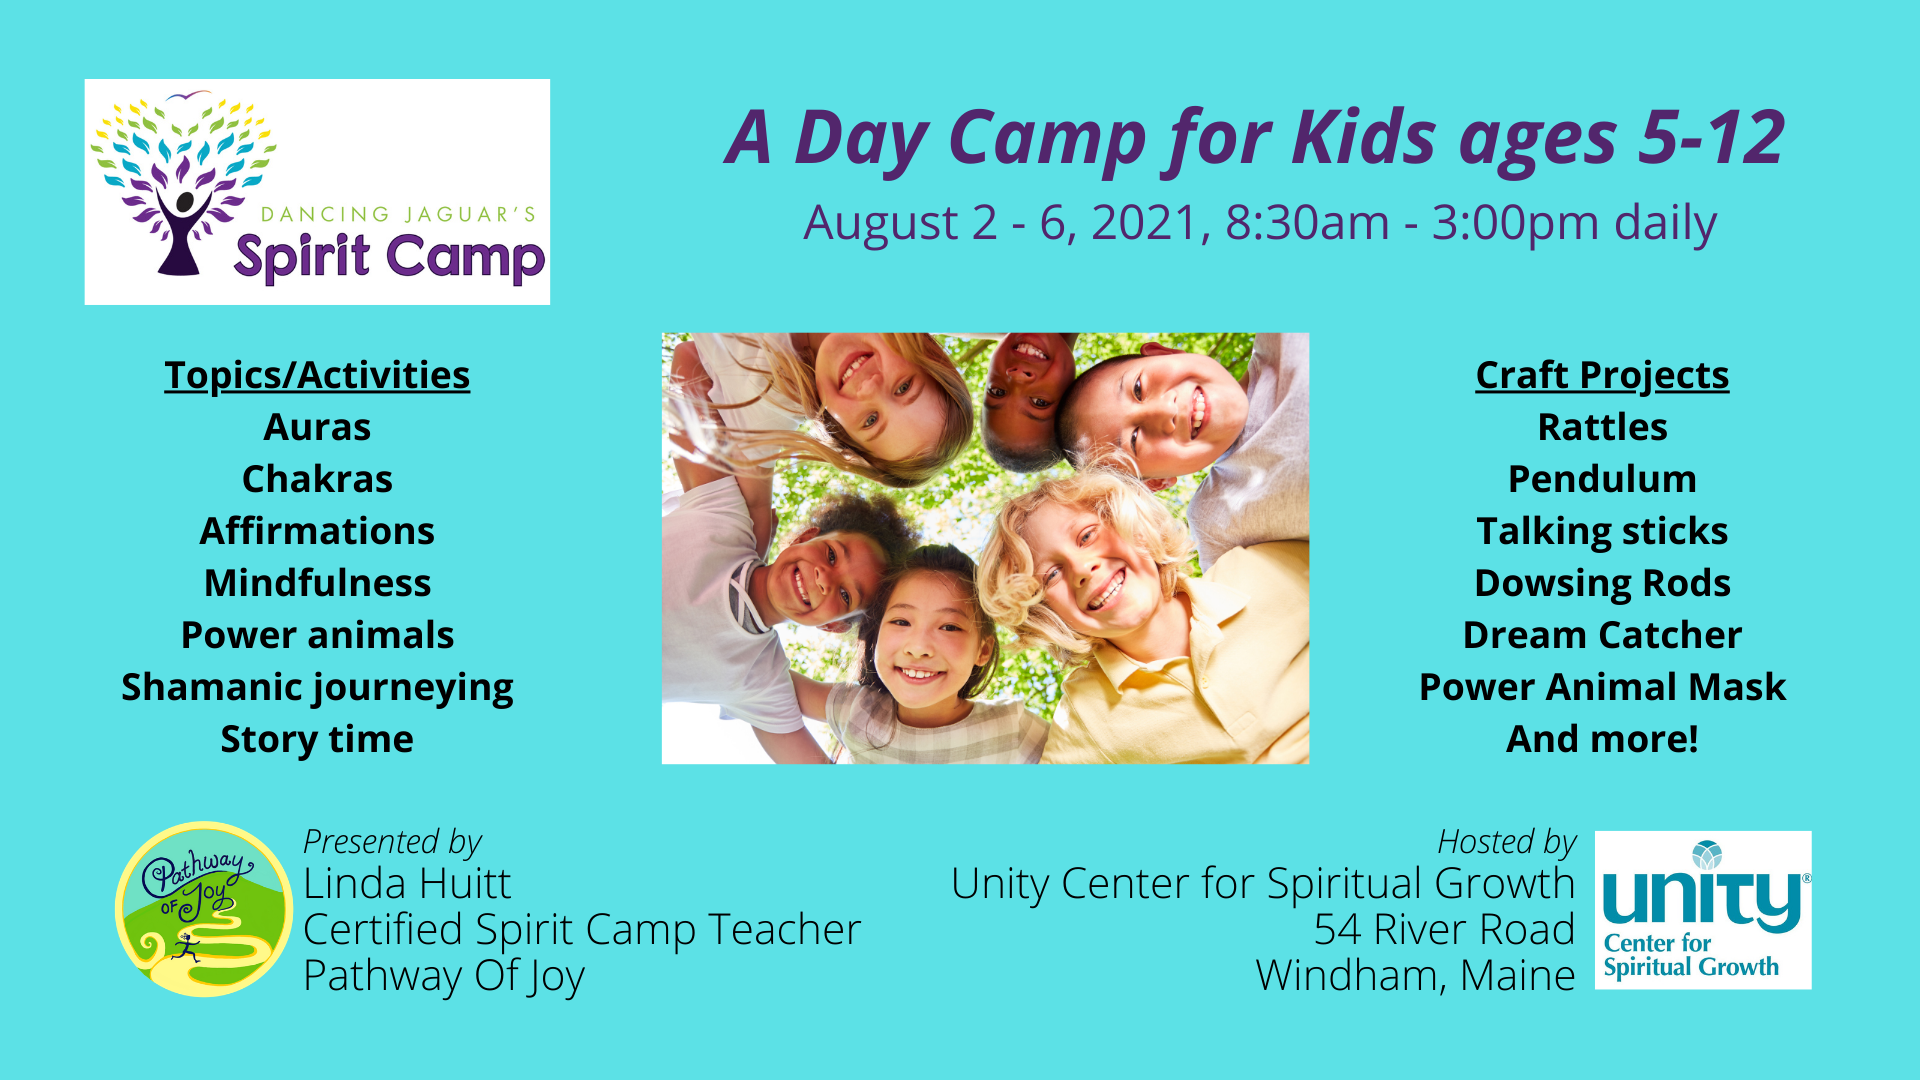 Spirit Camp for Kids Day Camp - Aug 2-6